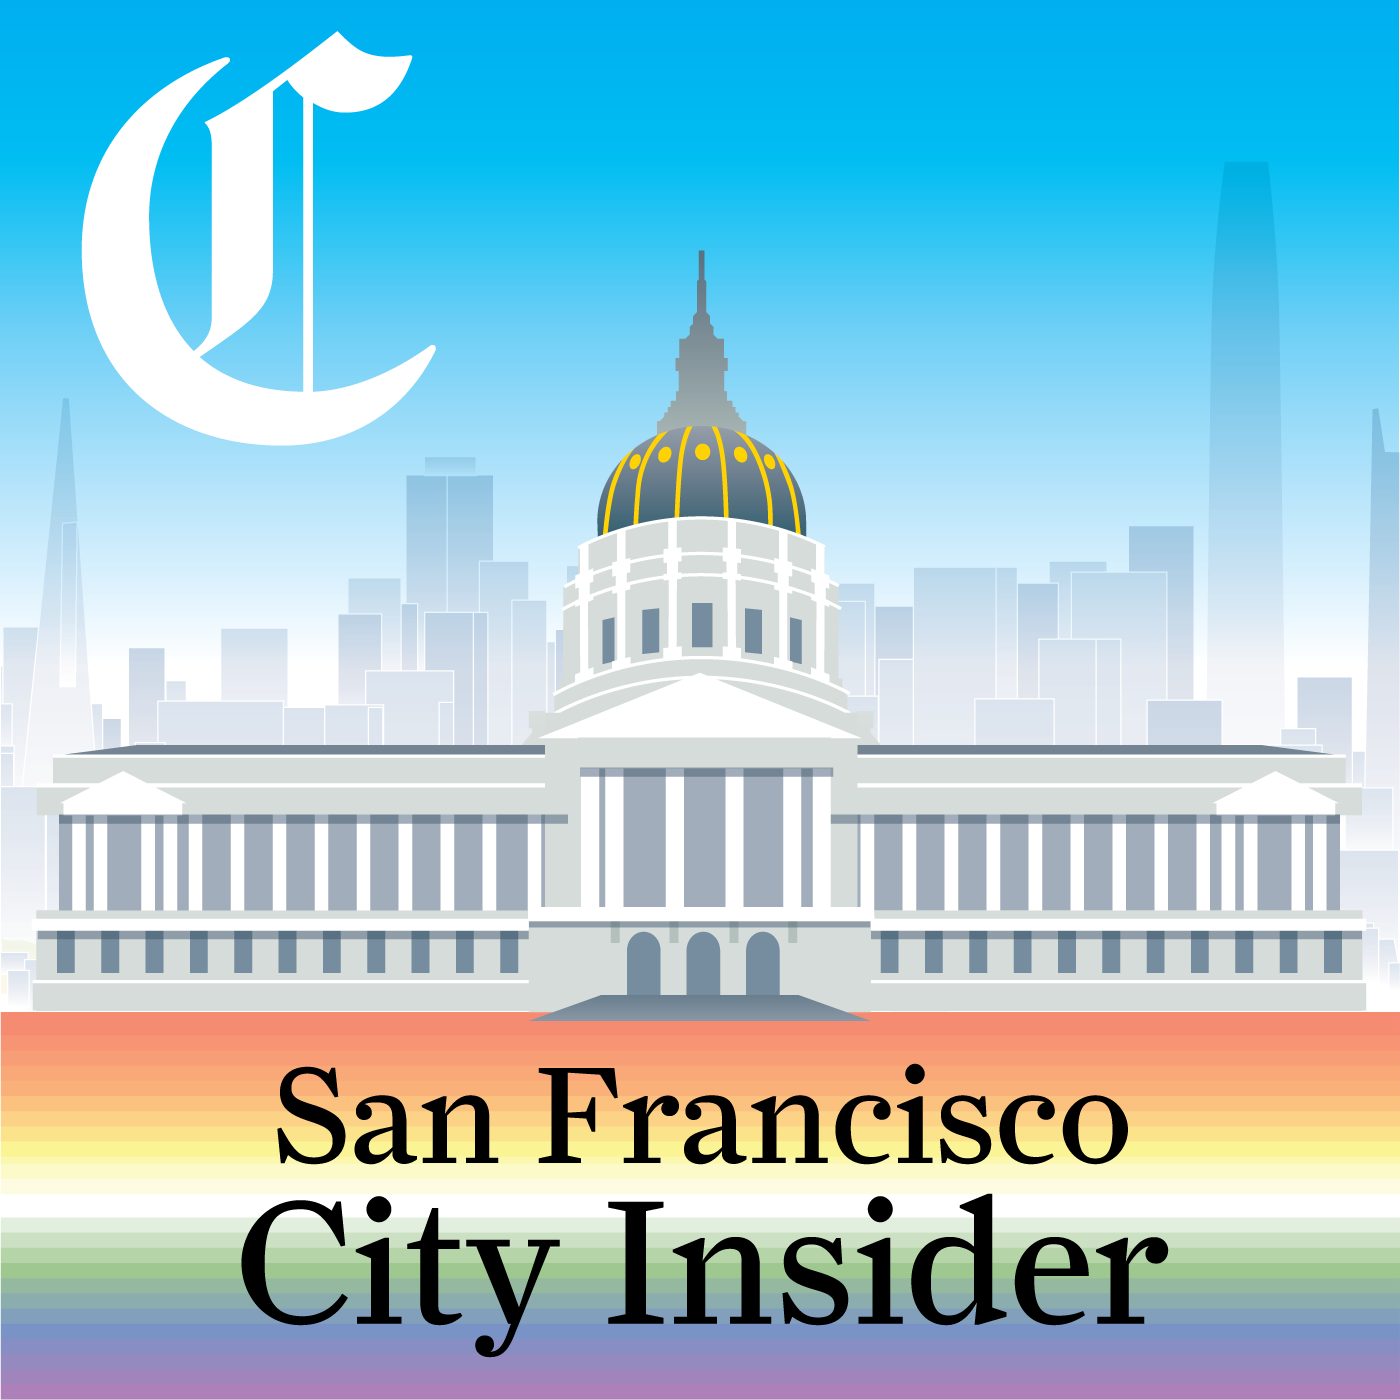 Opioid Addiction: One Family's Story by San Francisco City Insider